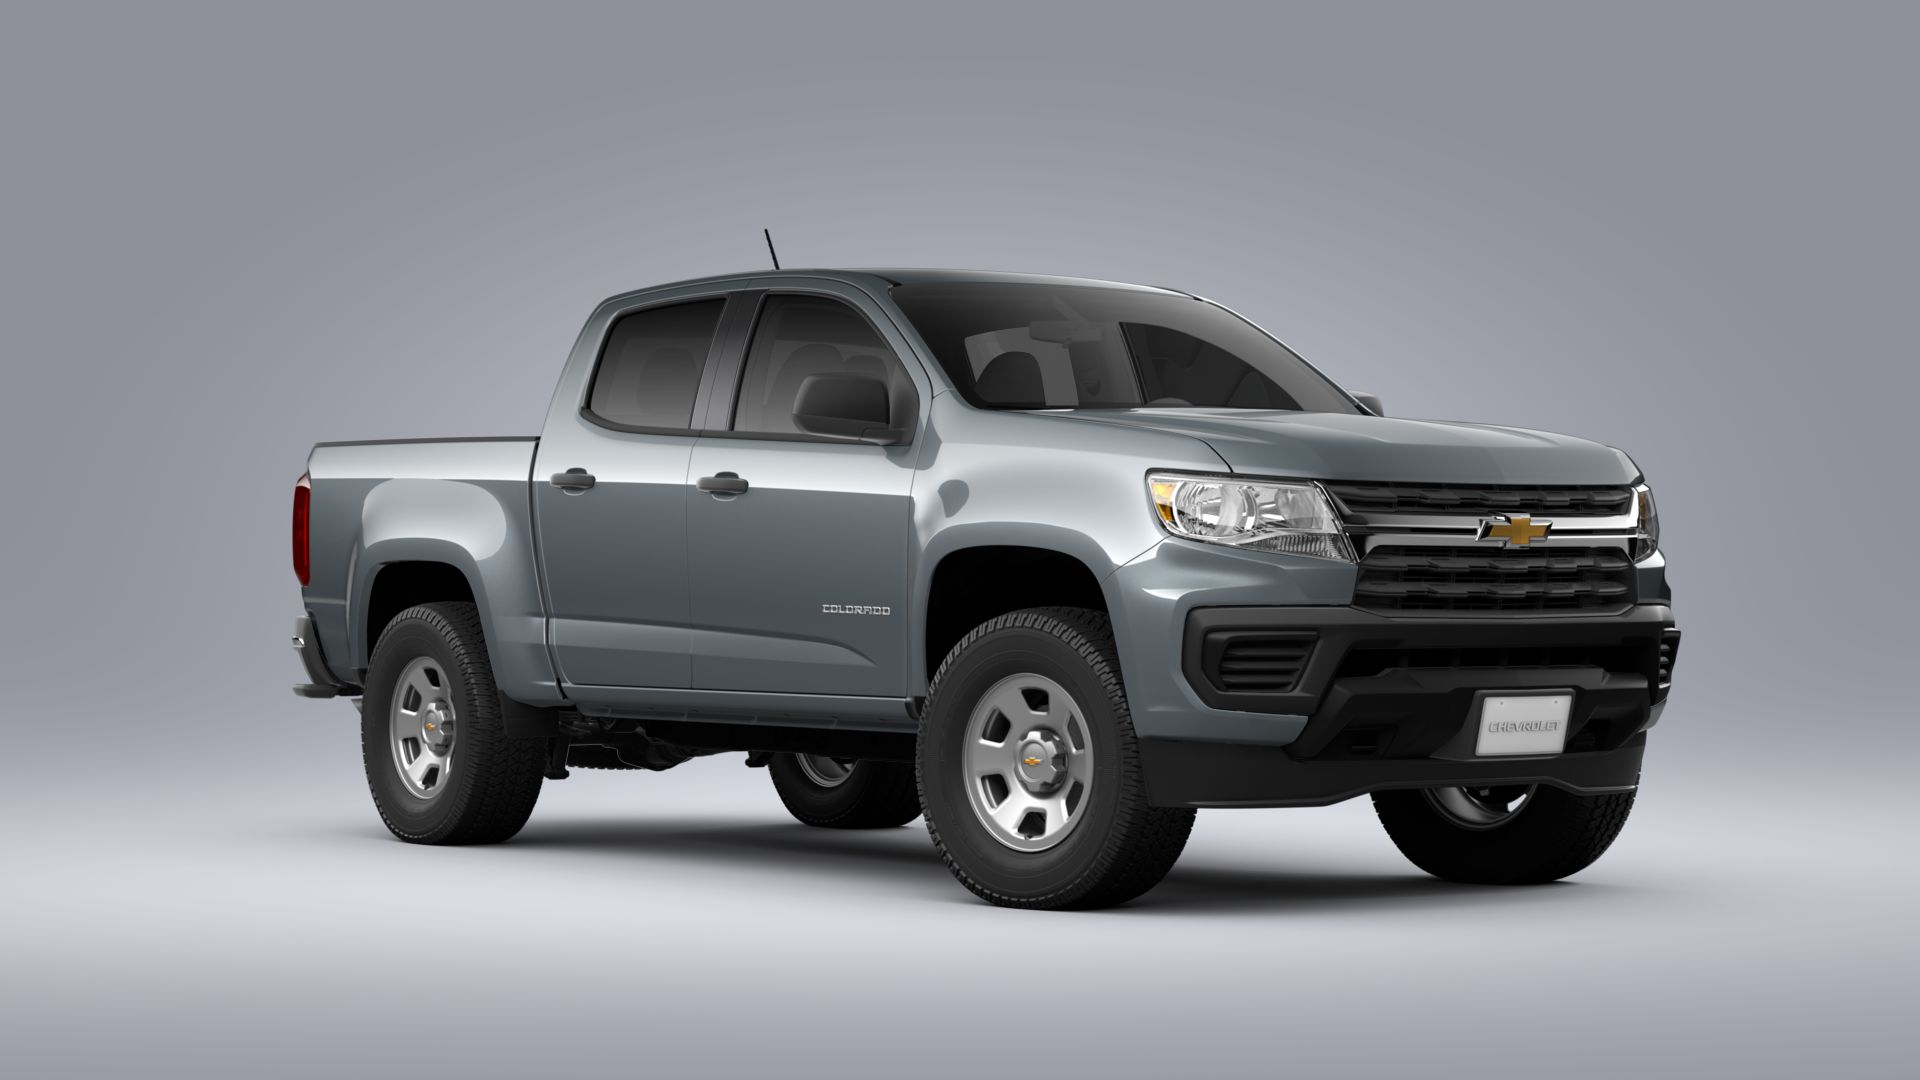 2021 Chevrolet Colorado Truck